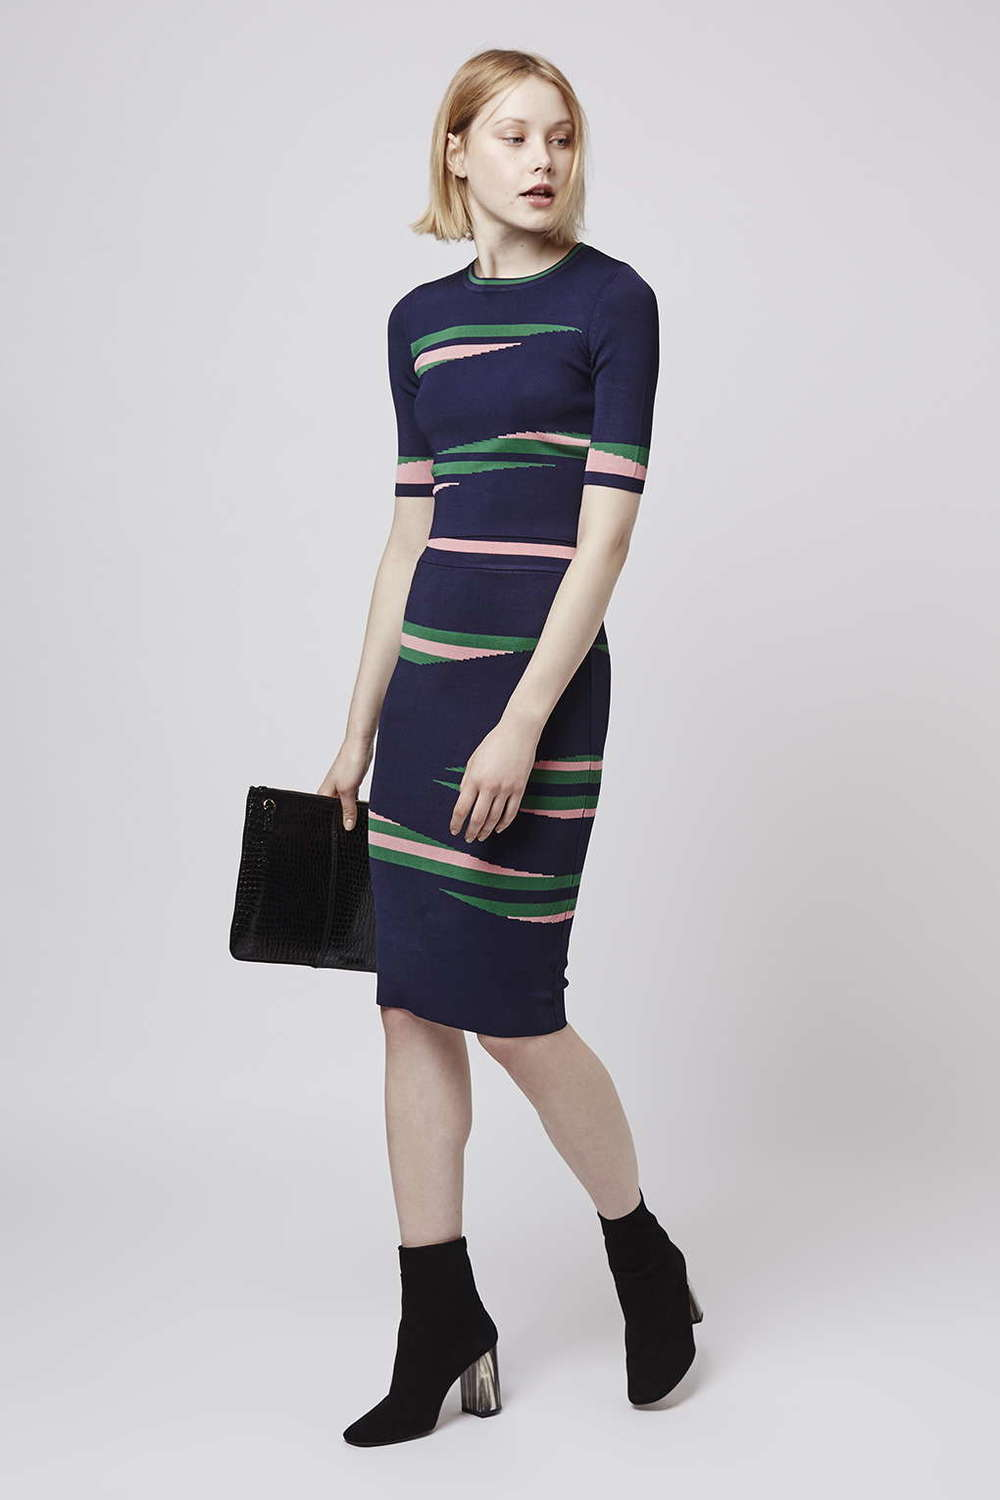 Eraser Stripe Top and Skirt. Topshop. $150.